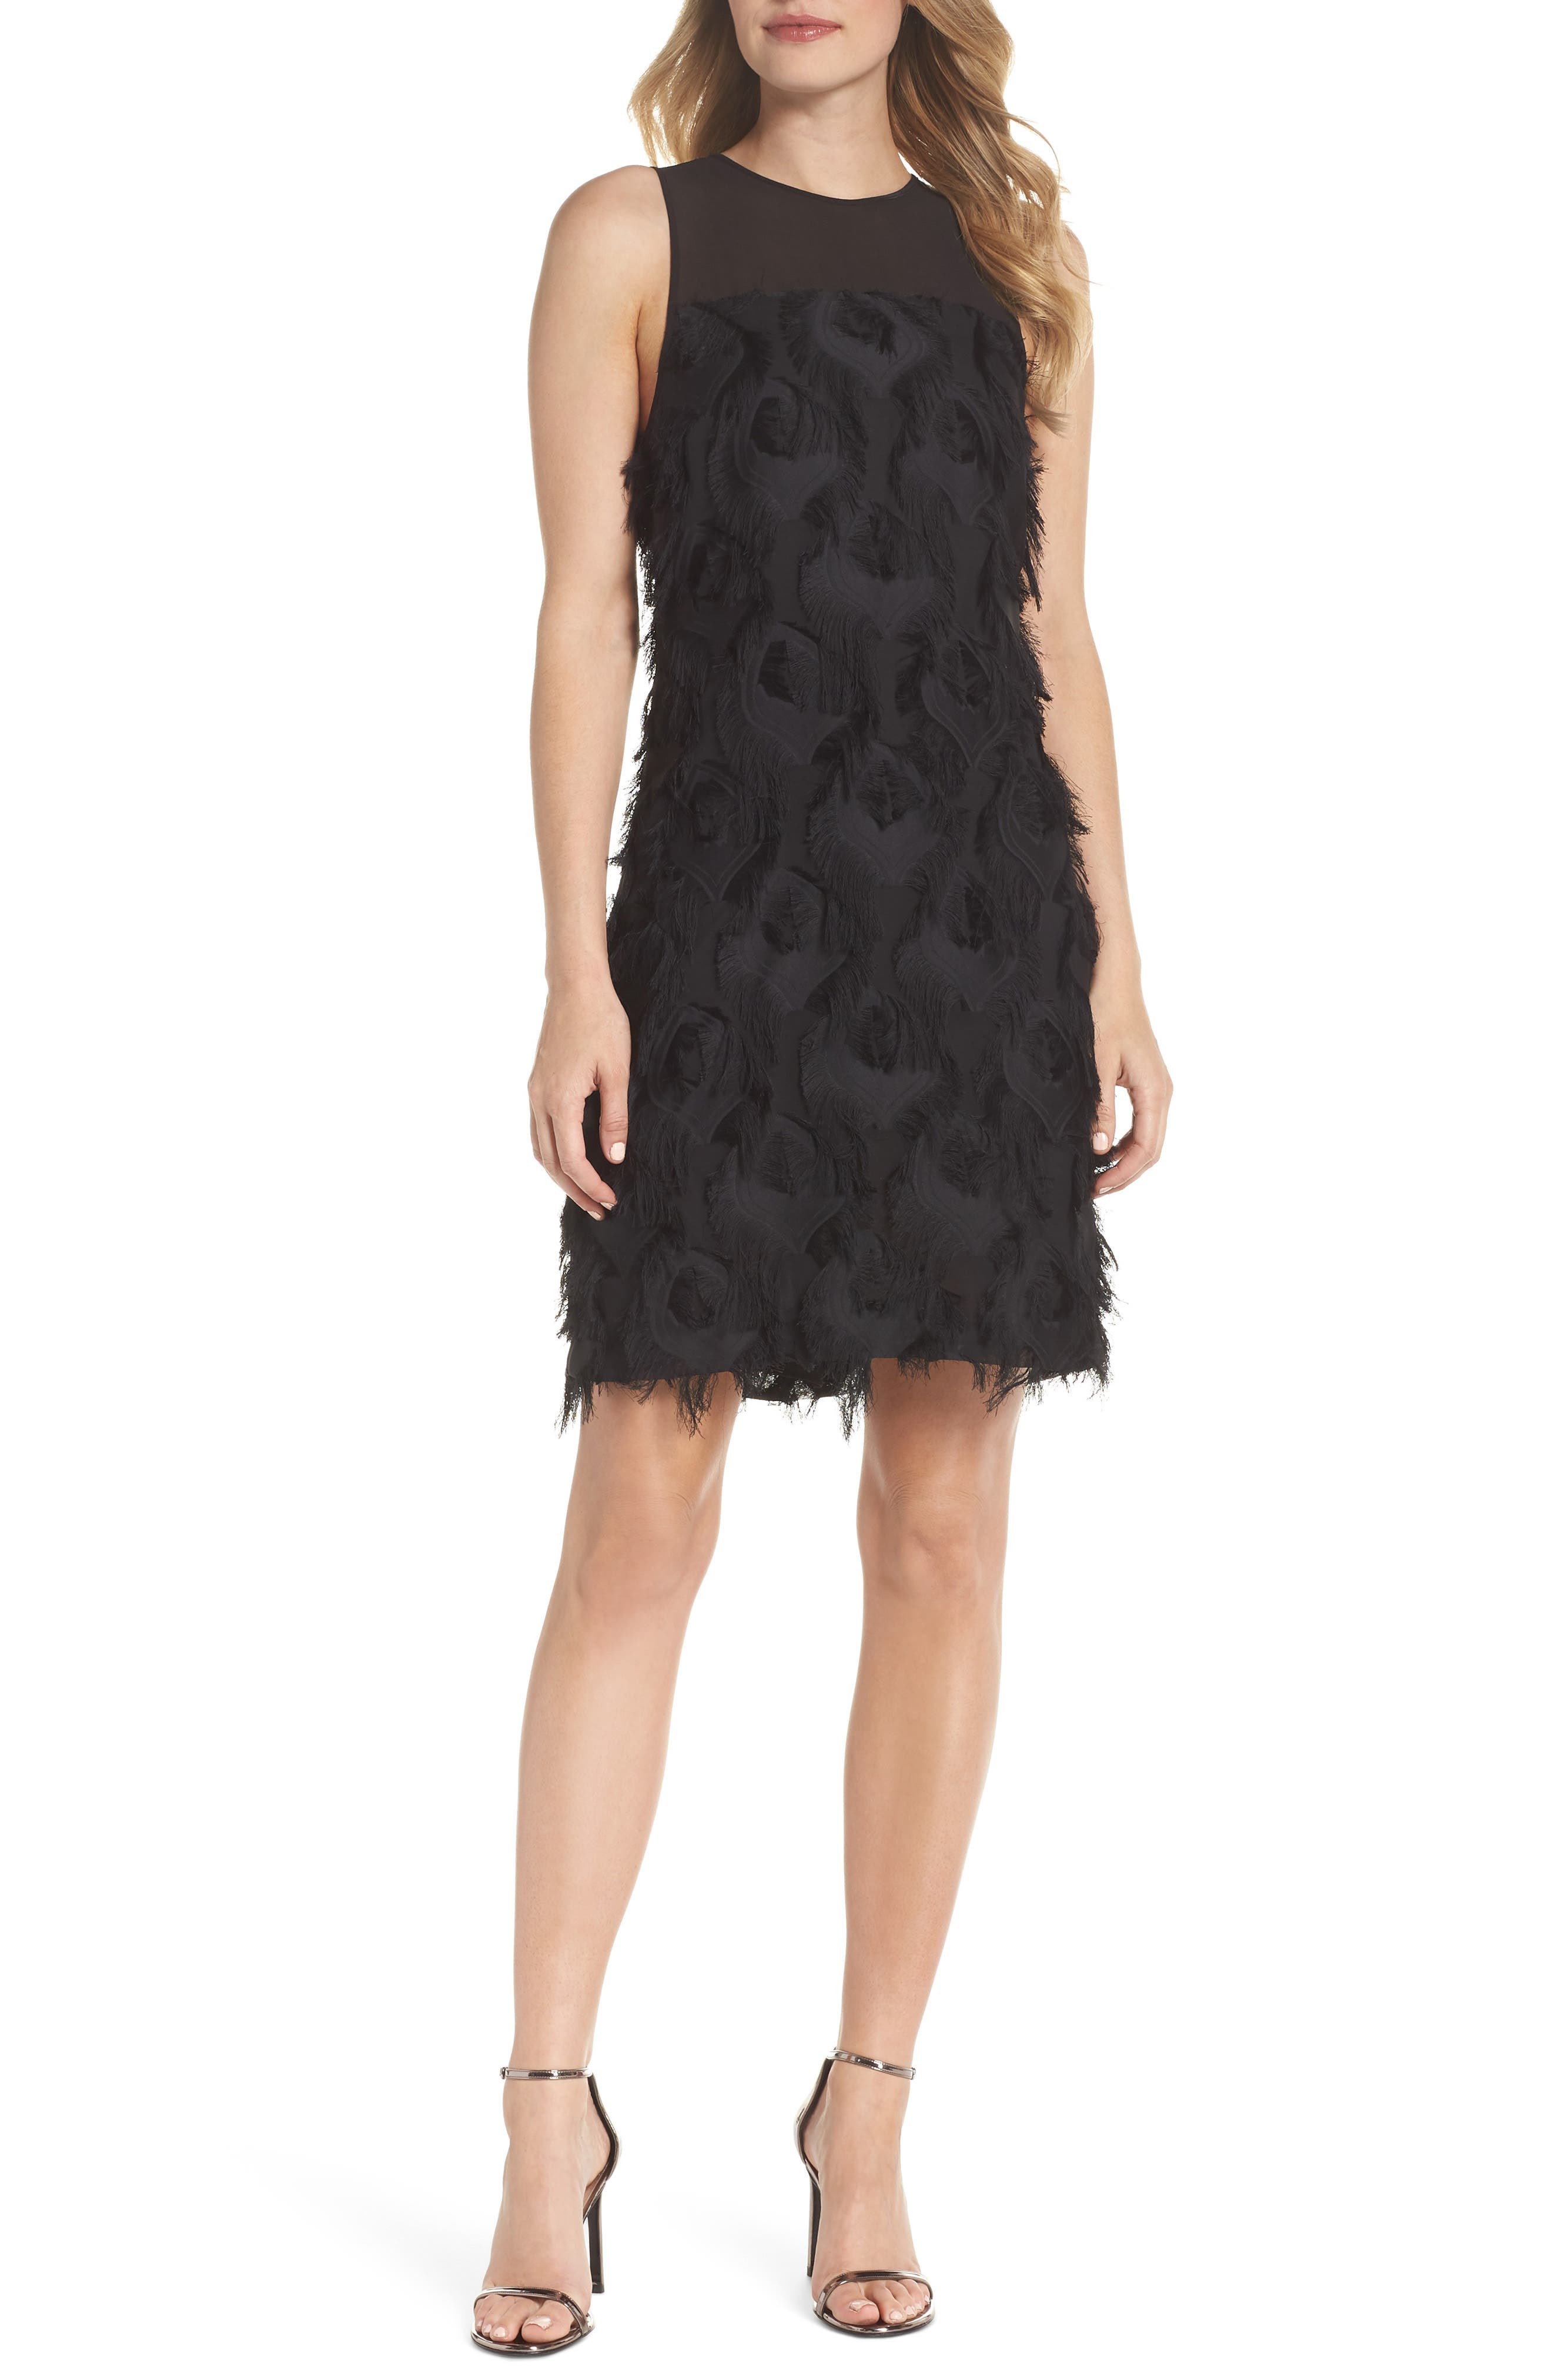 MICHAEL MICHAEL KORS Jacquard Peacock Feather Dress in Black